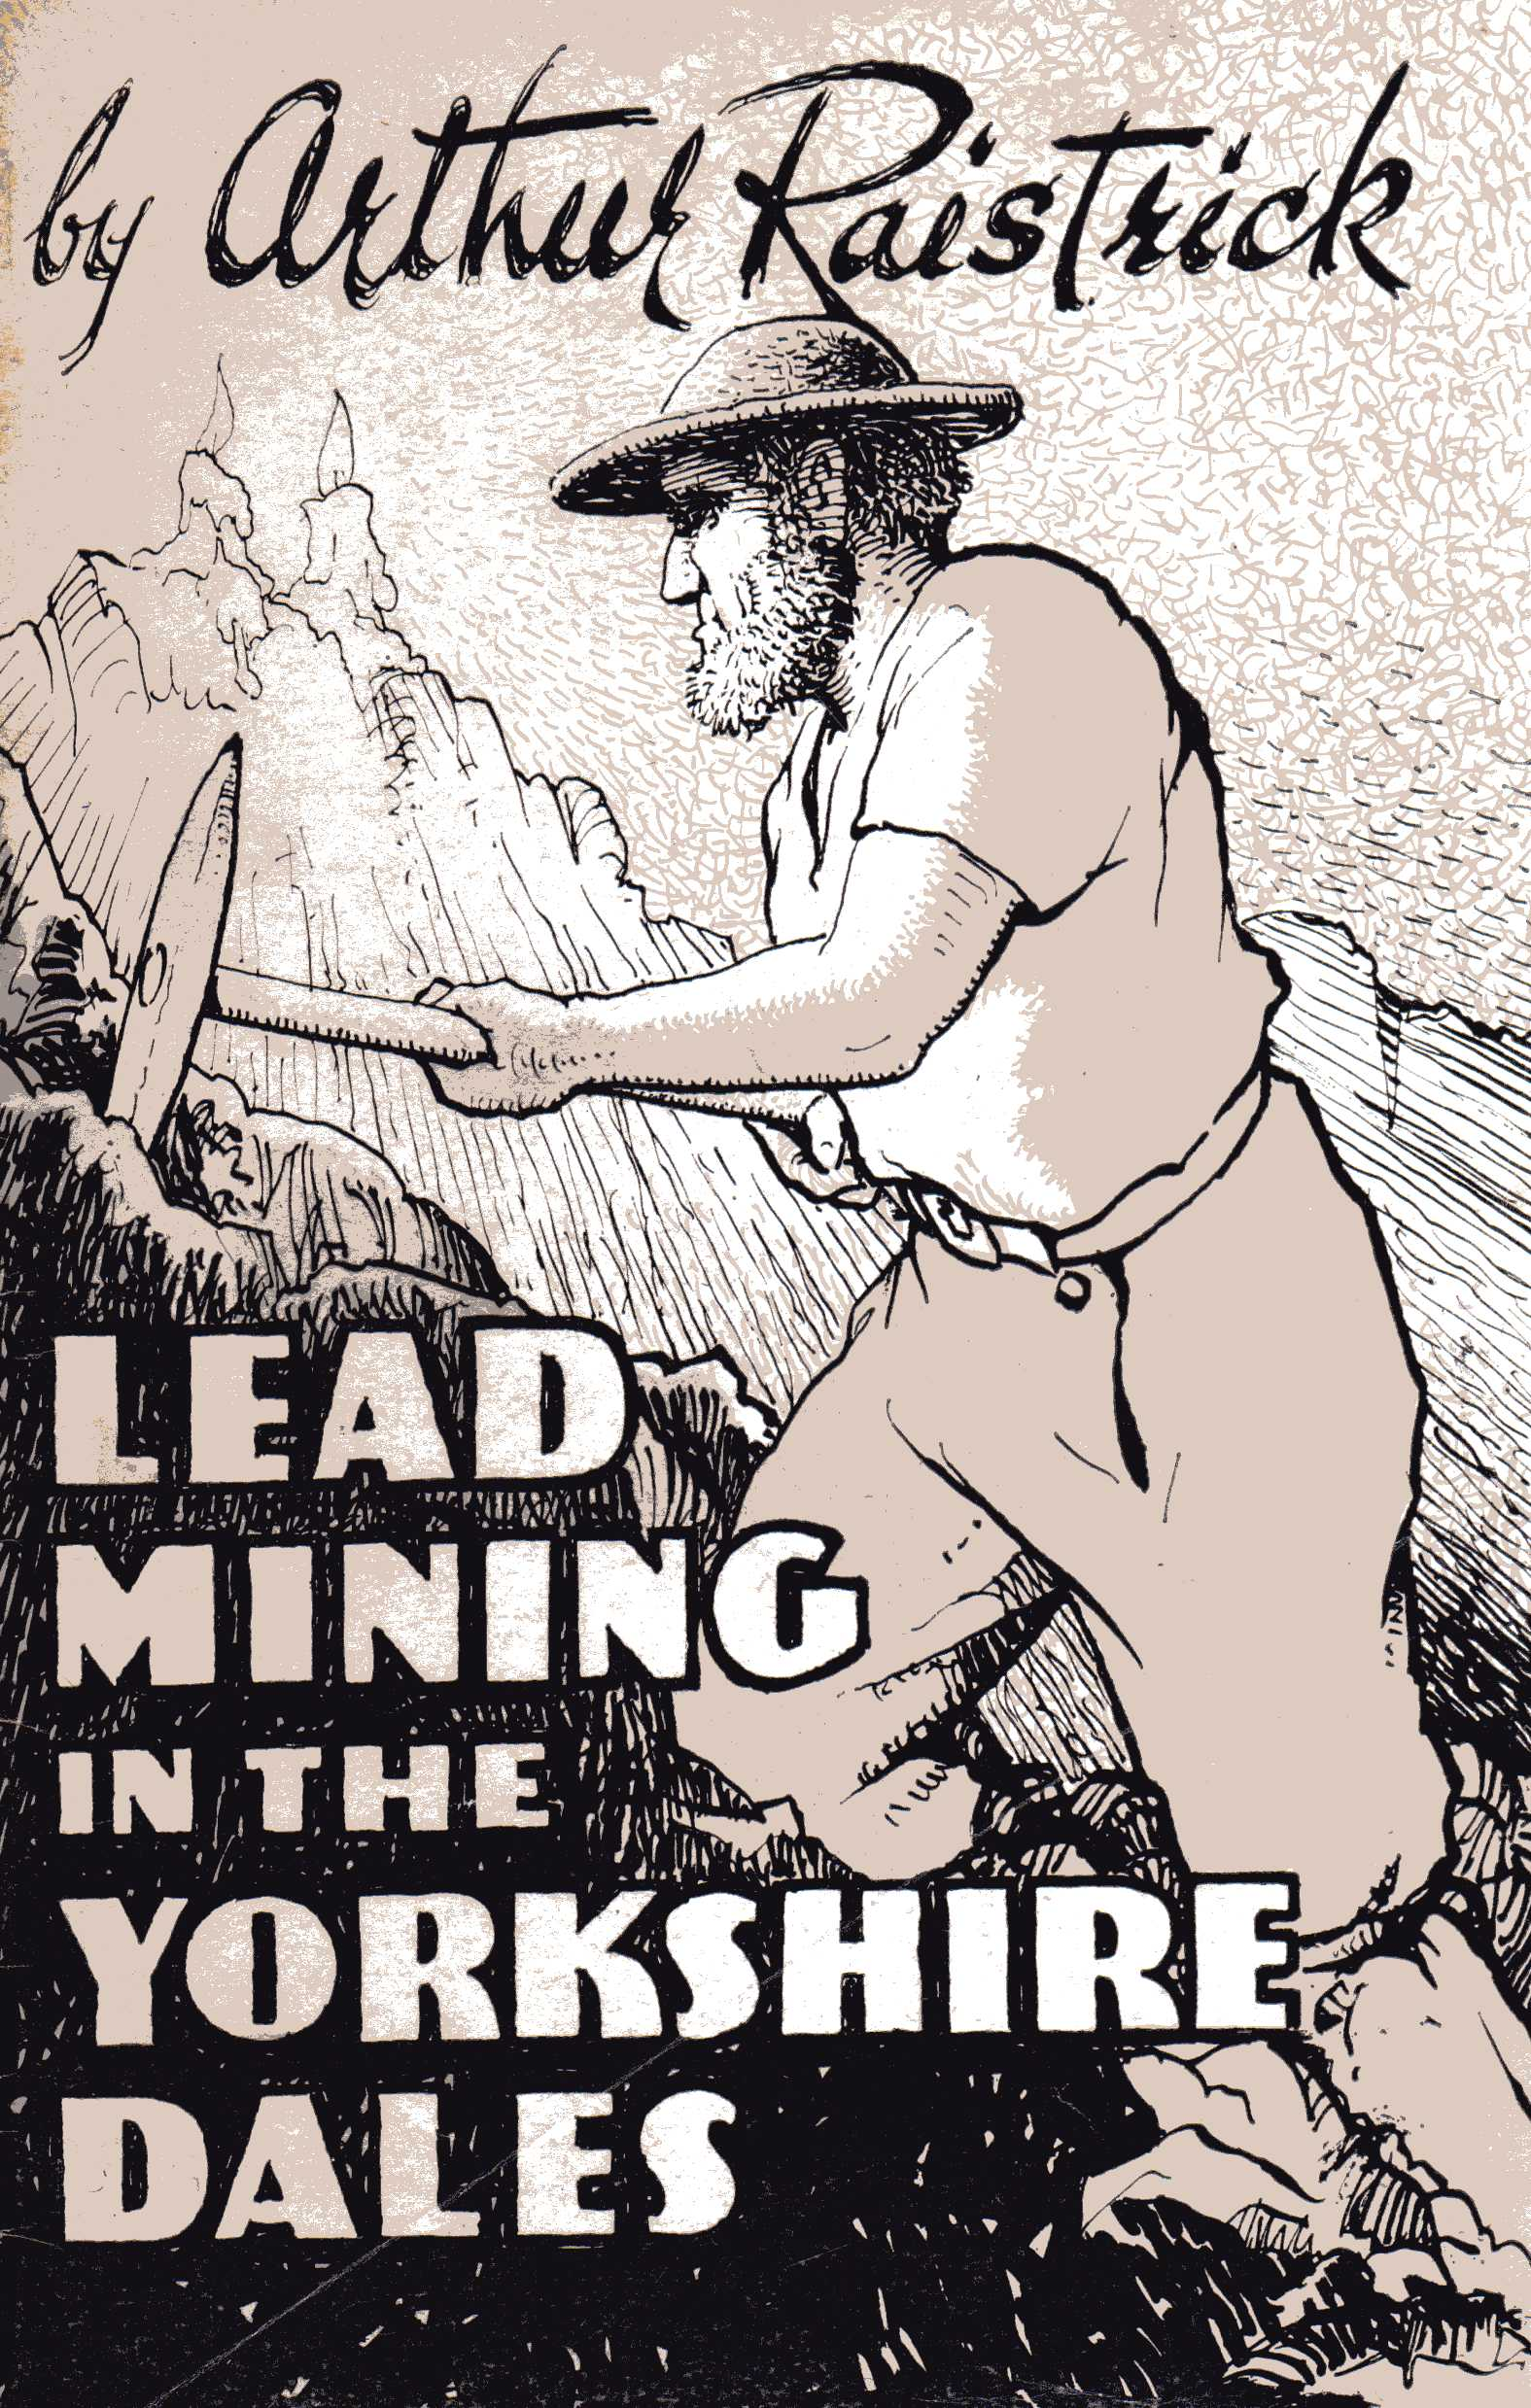 [USED] Lead Mining in the Yorkshire Dales (Raistrick)